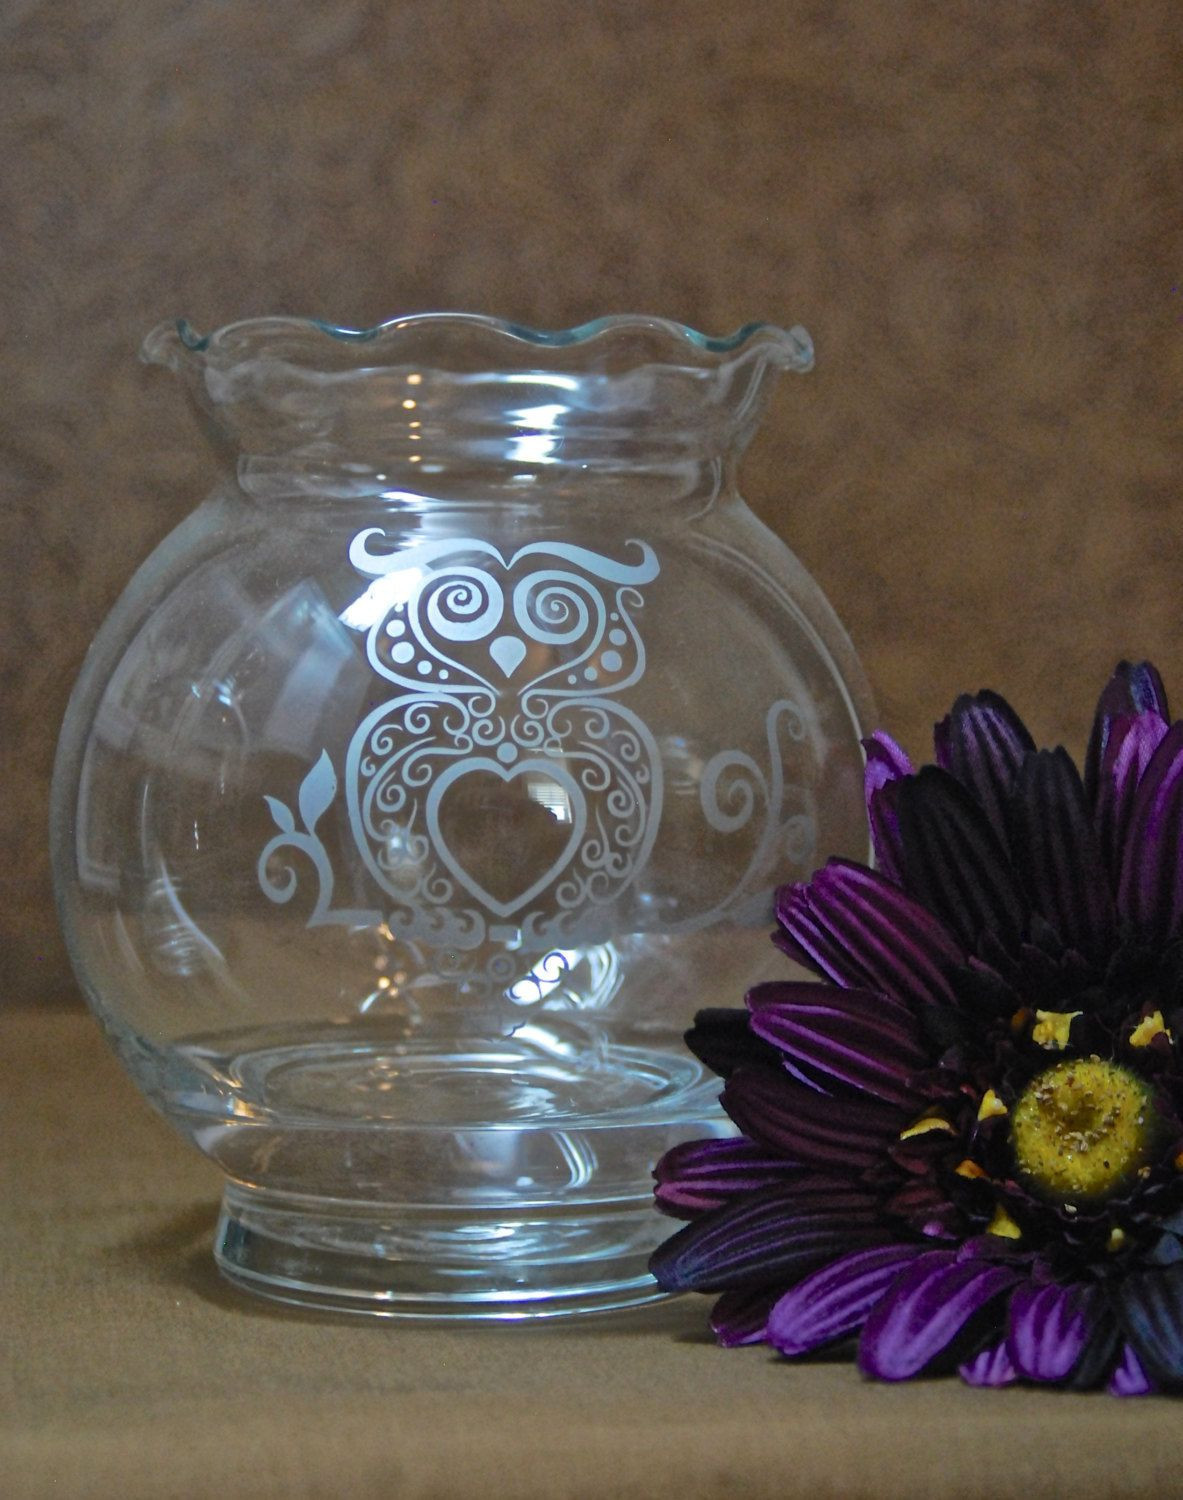 Sand Art Glass Vases Of Rose Bowl Vases Stock Round Bottom Vase New Doors H Vases Vase for Rose Bowl Vases Gallery Glass Etched Silver Owl Rose Bowl Vase Sandblasted Sand Carved Of Rose